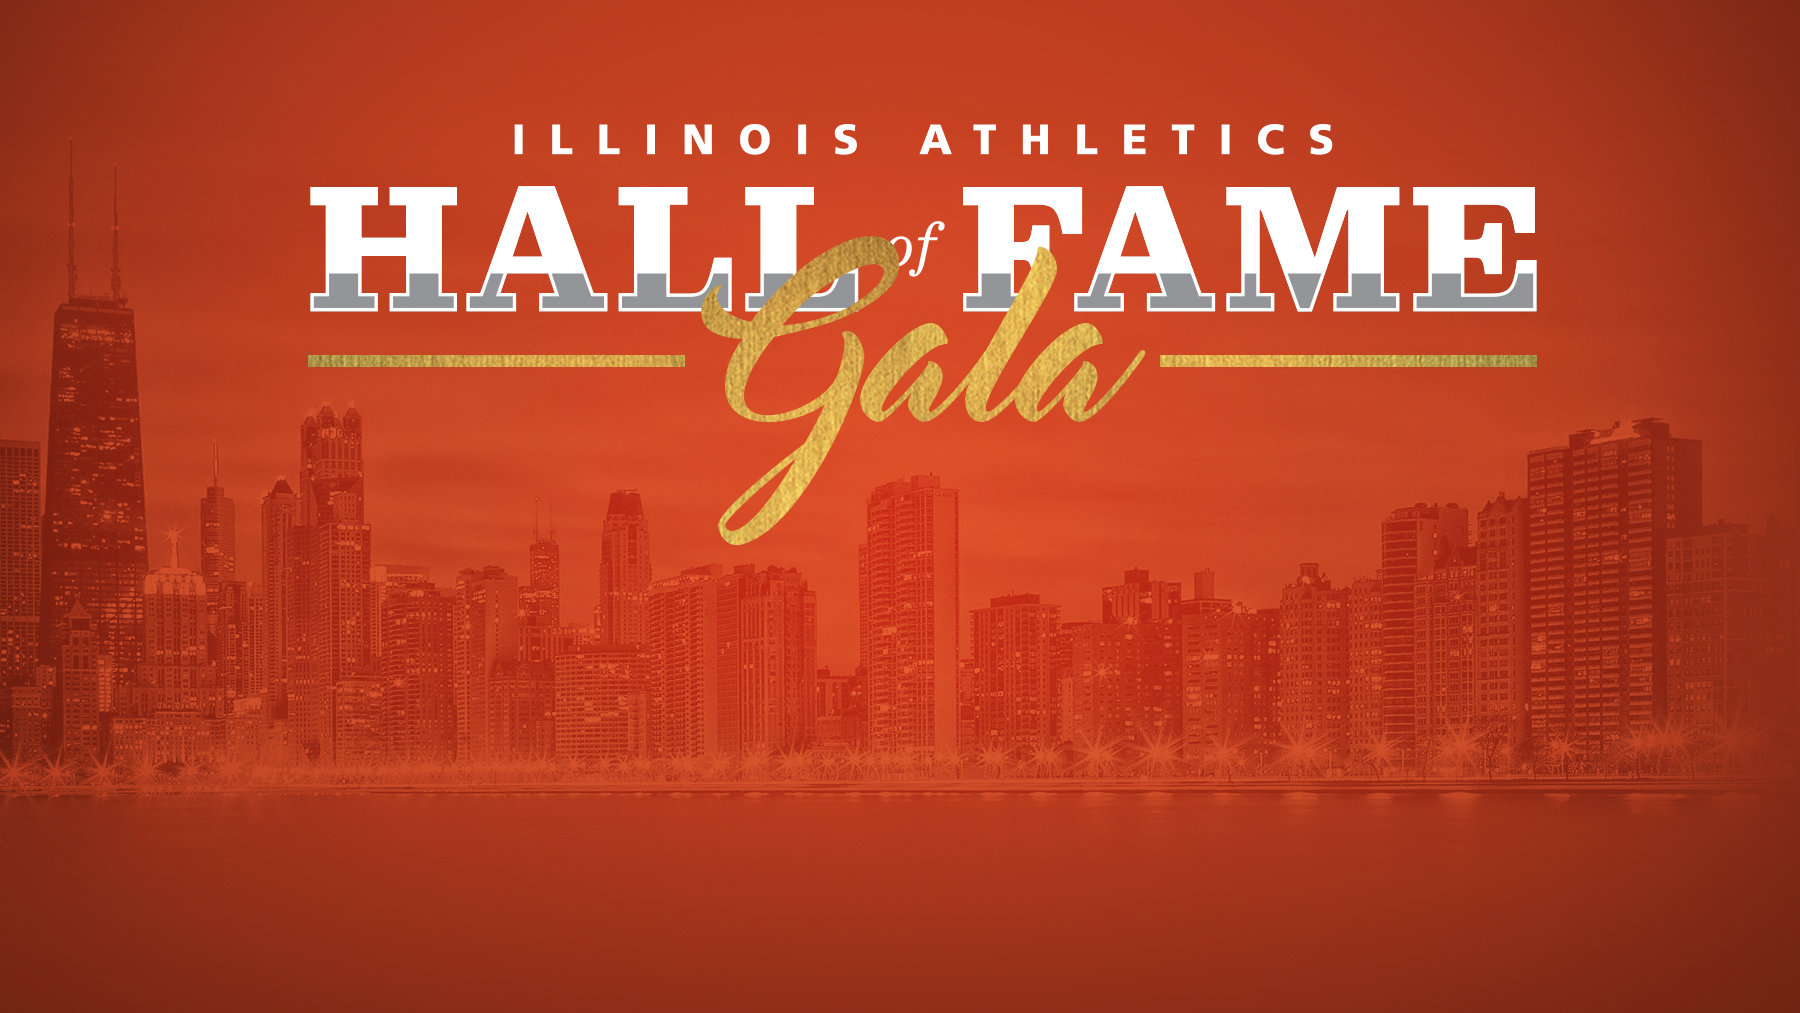 Graphic for Fighting Illini Athletics Hall of Fame gala